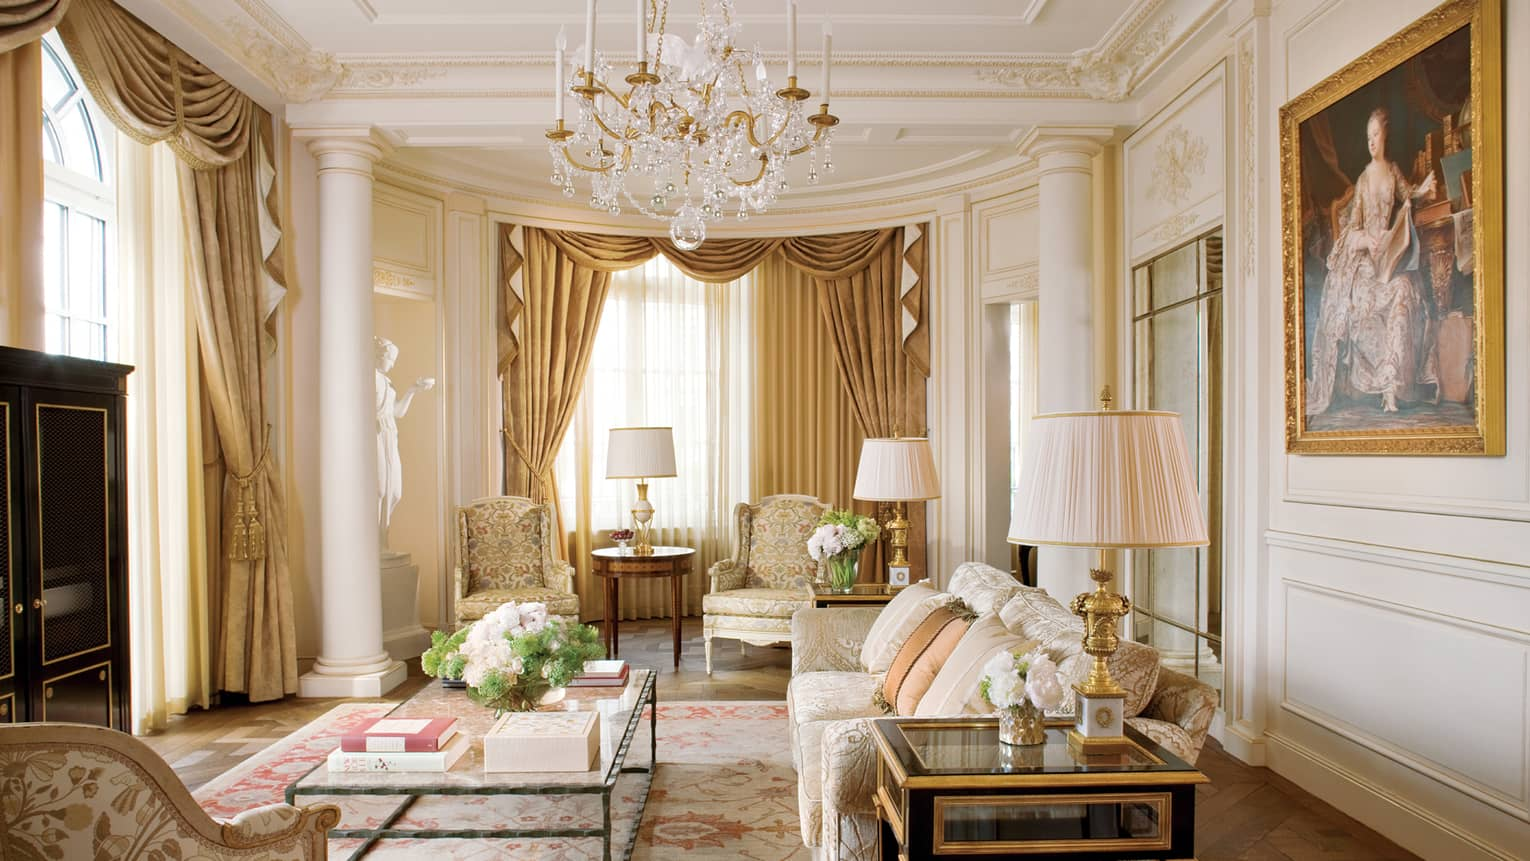 Elegant Royal Suite living room with cream floral sofas and decor, crystal chandelier, white statue, large oil painting